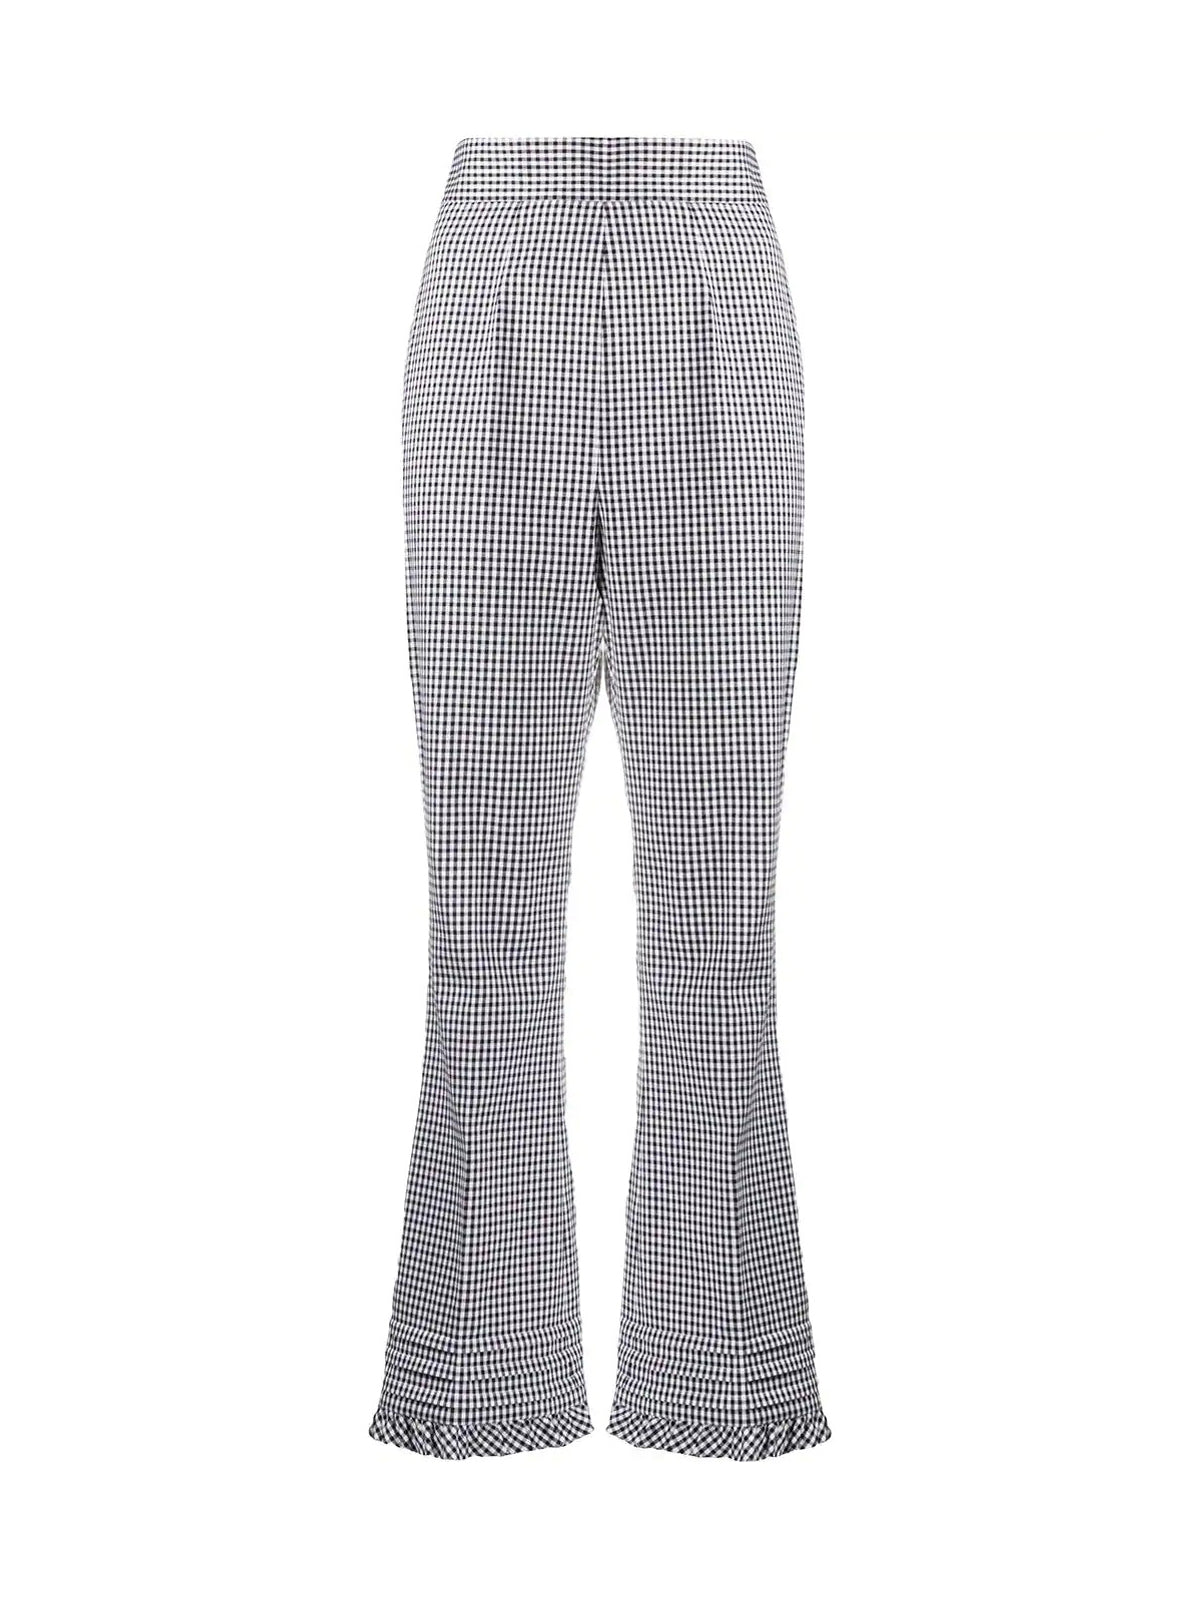 gingham-check flared trousers